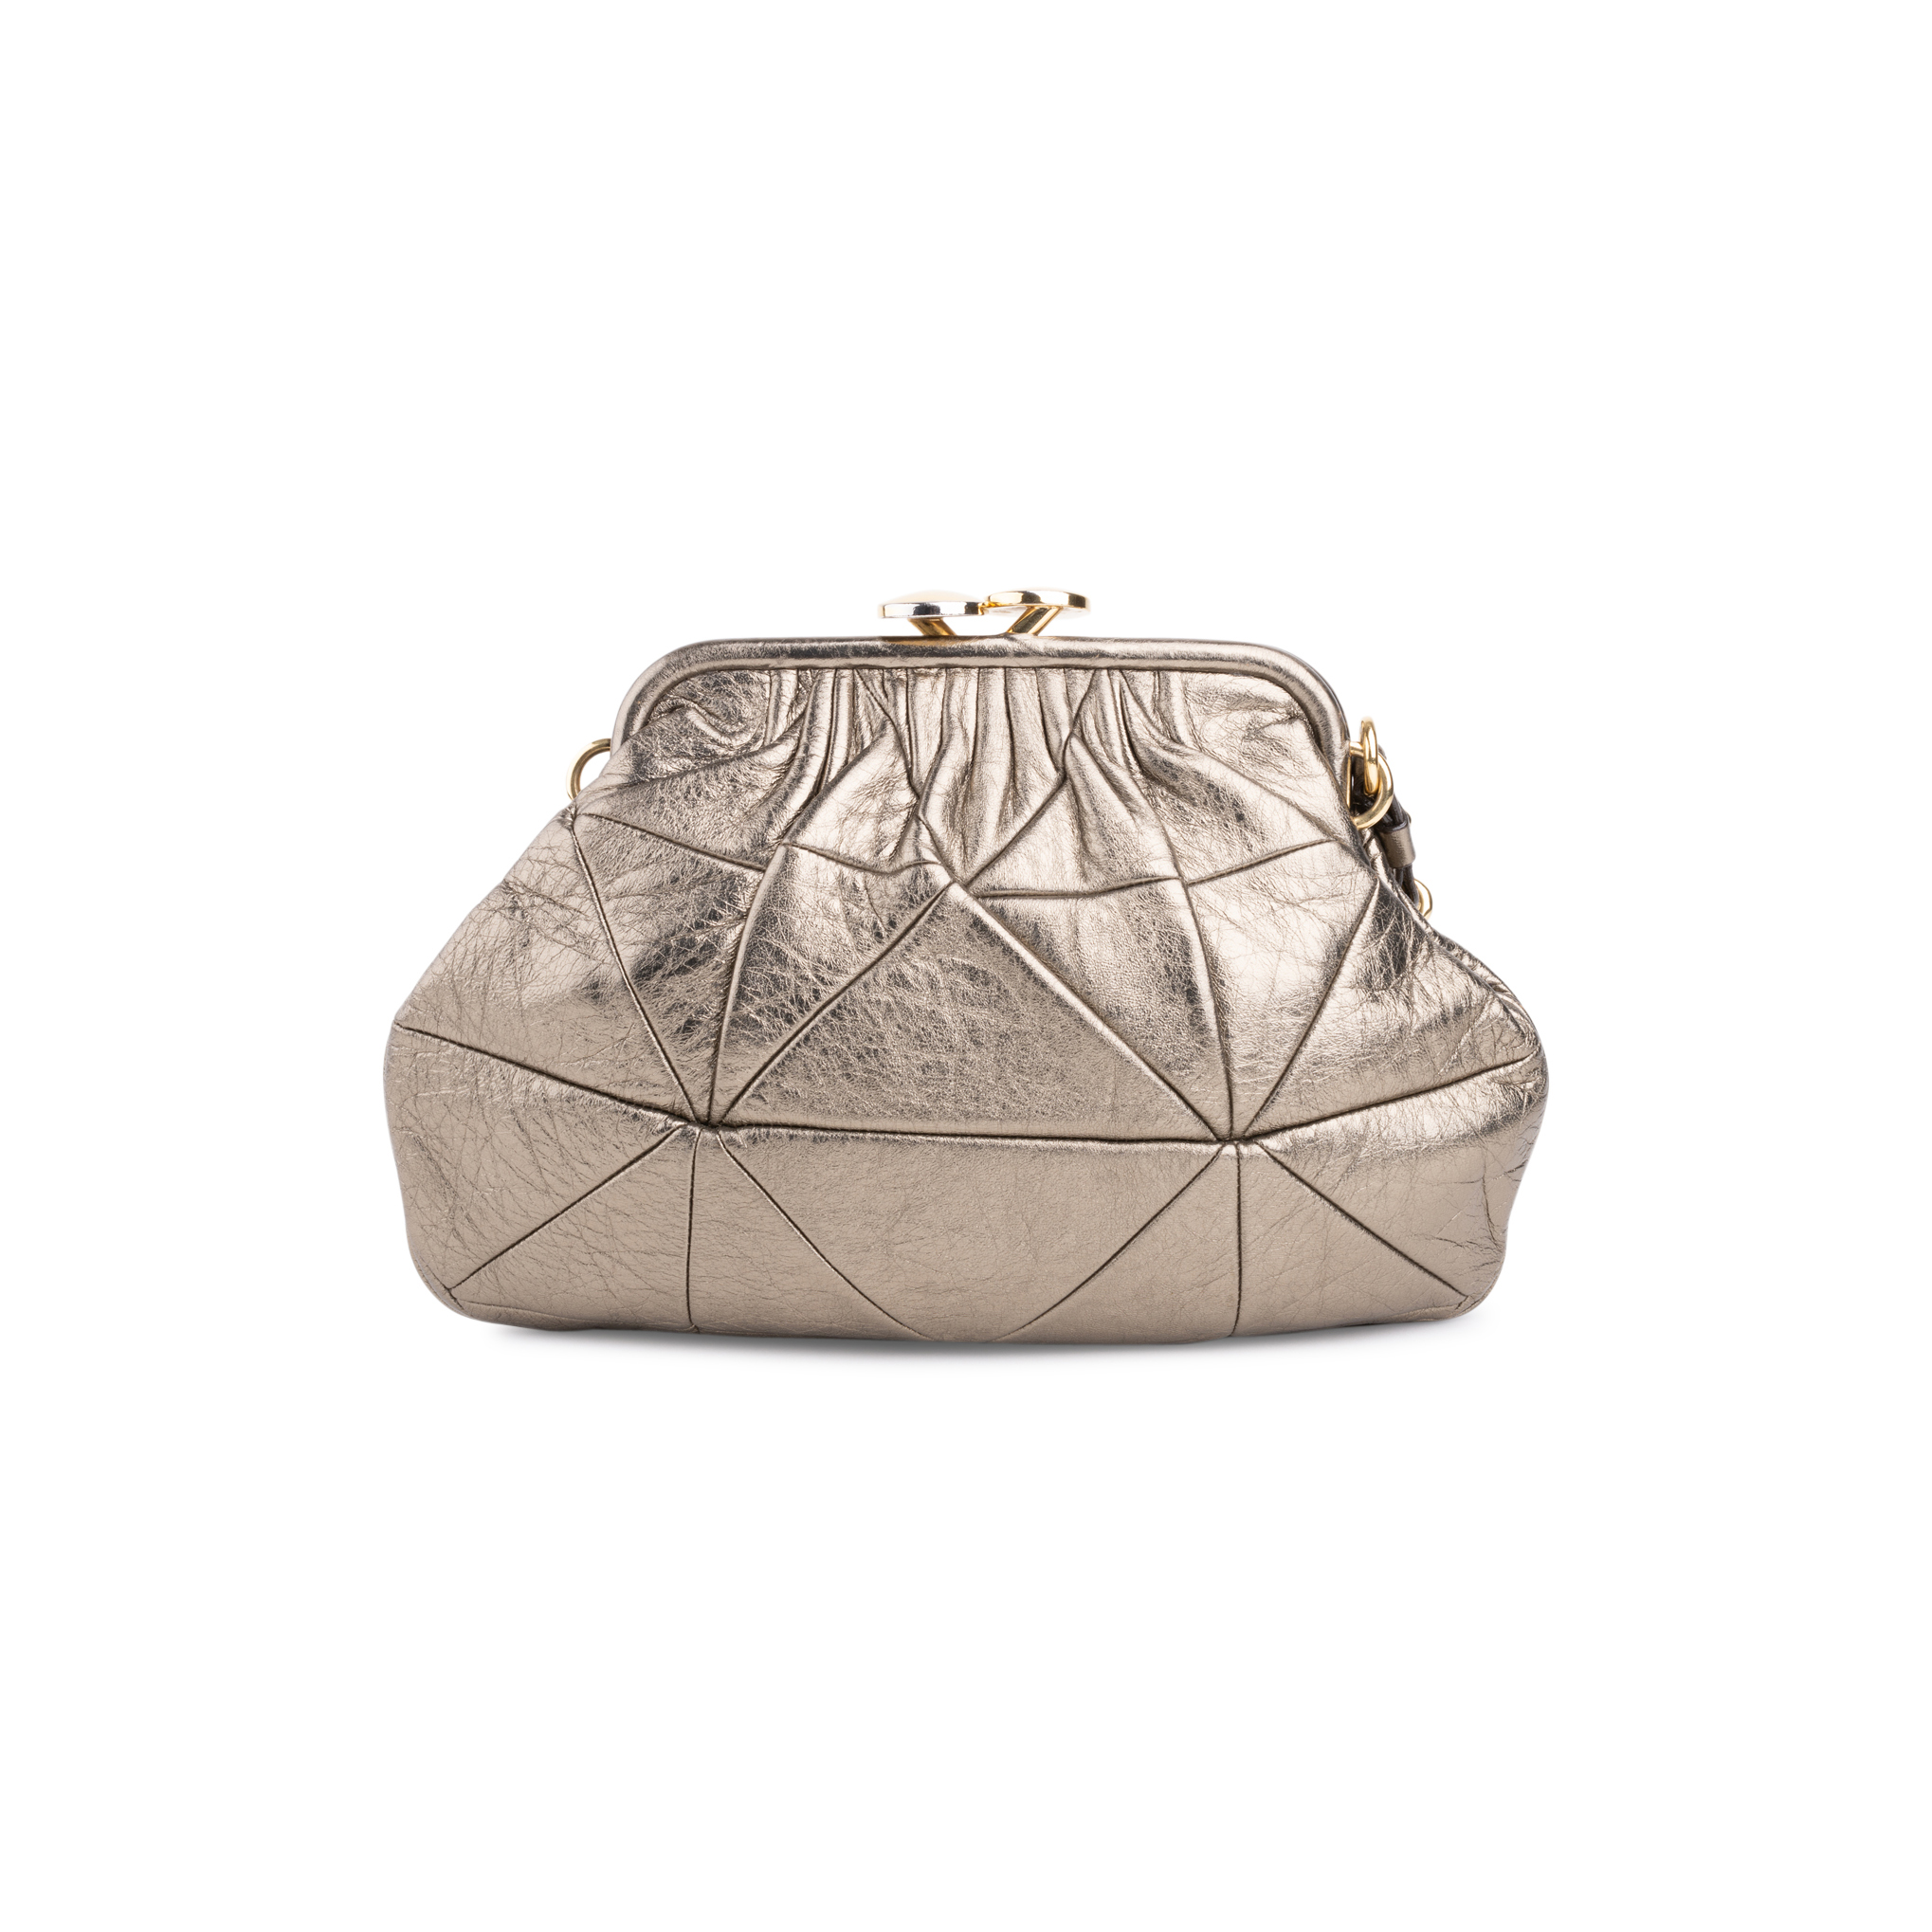 a85274579d Authentic Second Hand Marc Jacobs Little Stam Bag (PSS-608-00005) - THE  FIFTH COLLECTION